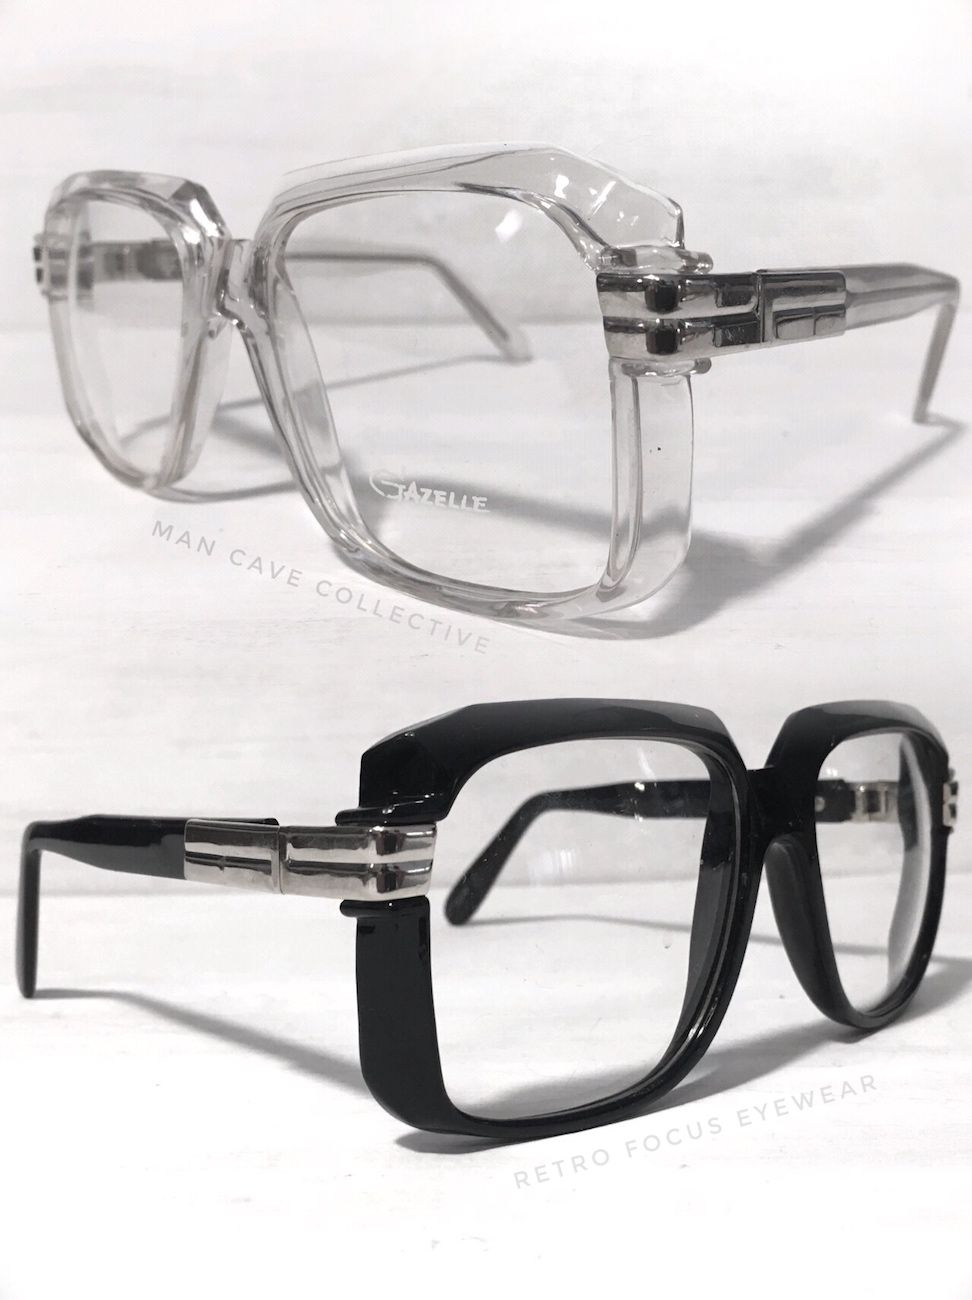 6a85e395c77 Square oversized eyeglasses. Thick geek hipster statement eyeglass frames  in black or crystal clear. Gazelle is the name